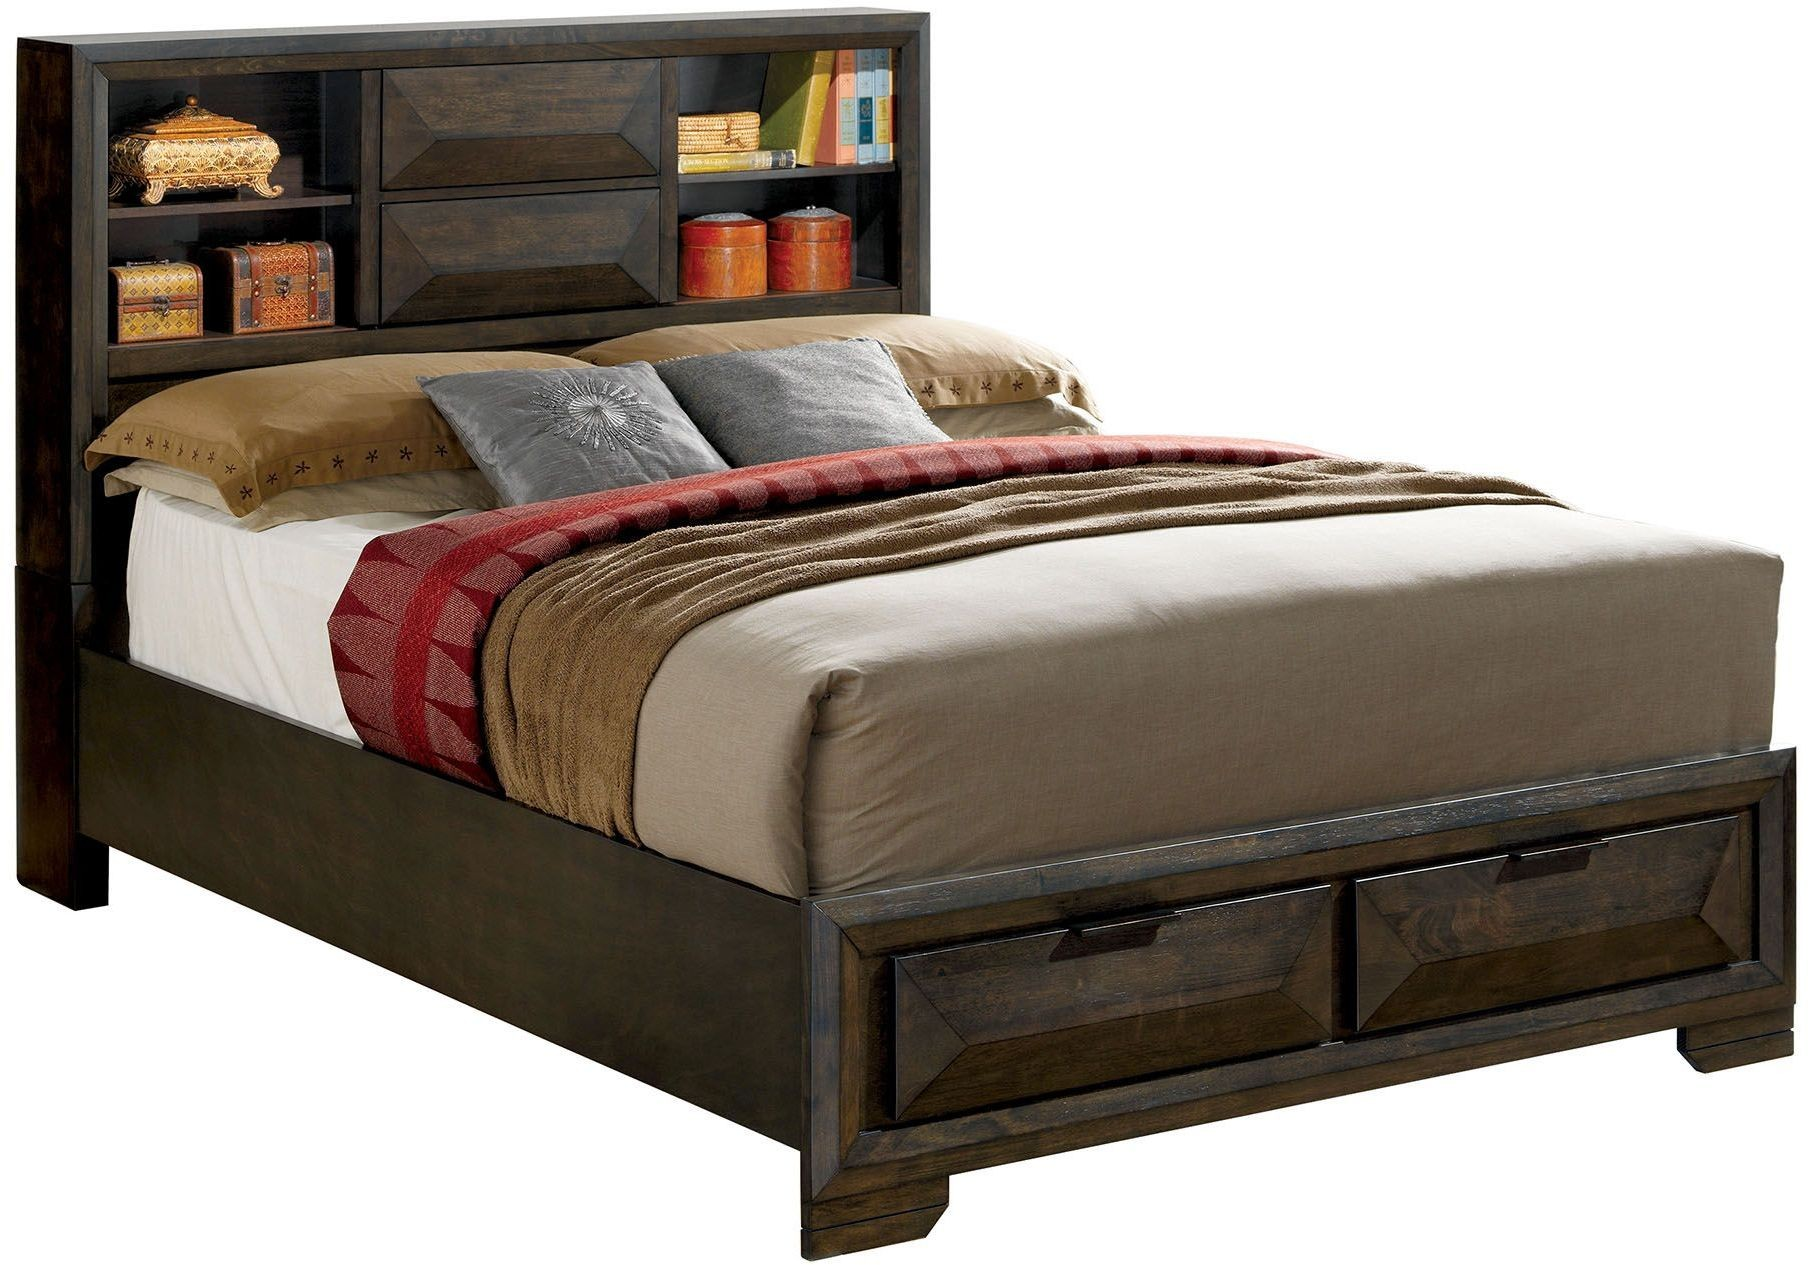 Nikomedes espresso cal king platform storage bed cm7557ck - California king storage bedroom sets ...